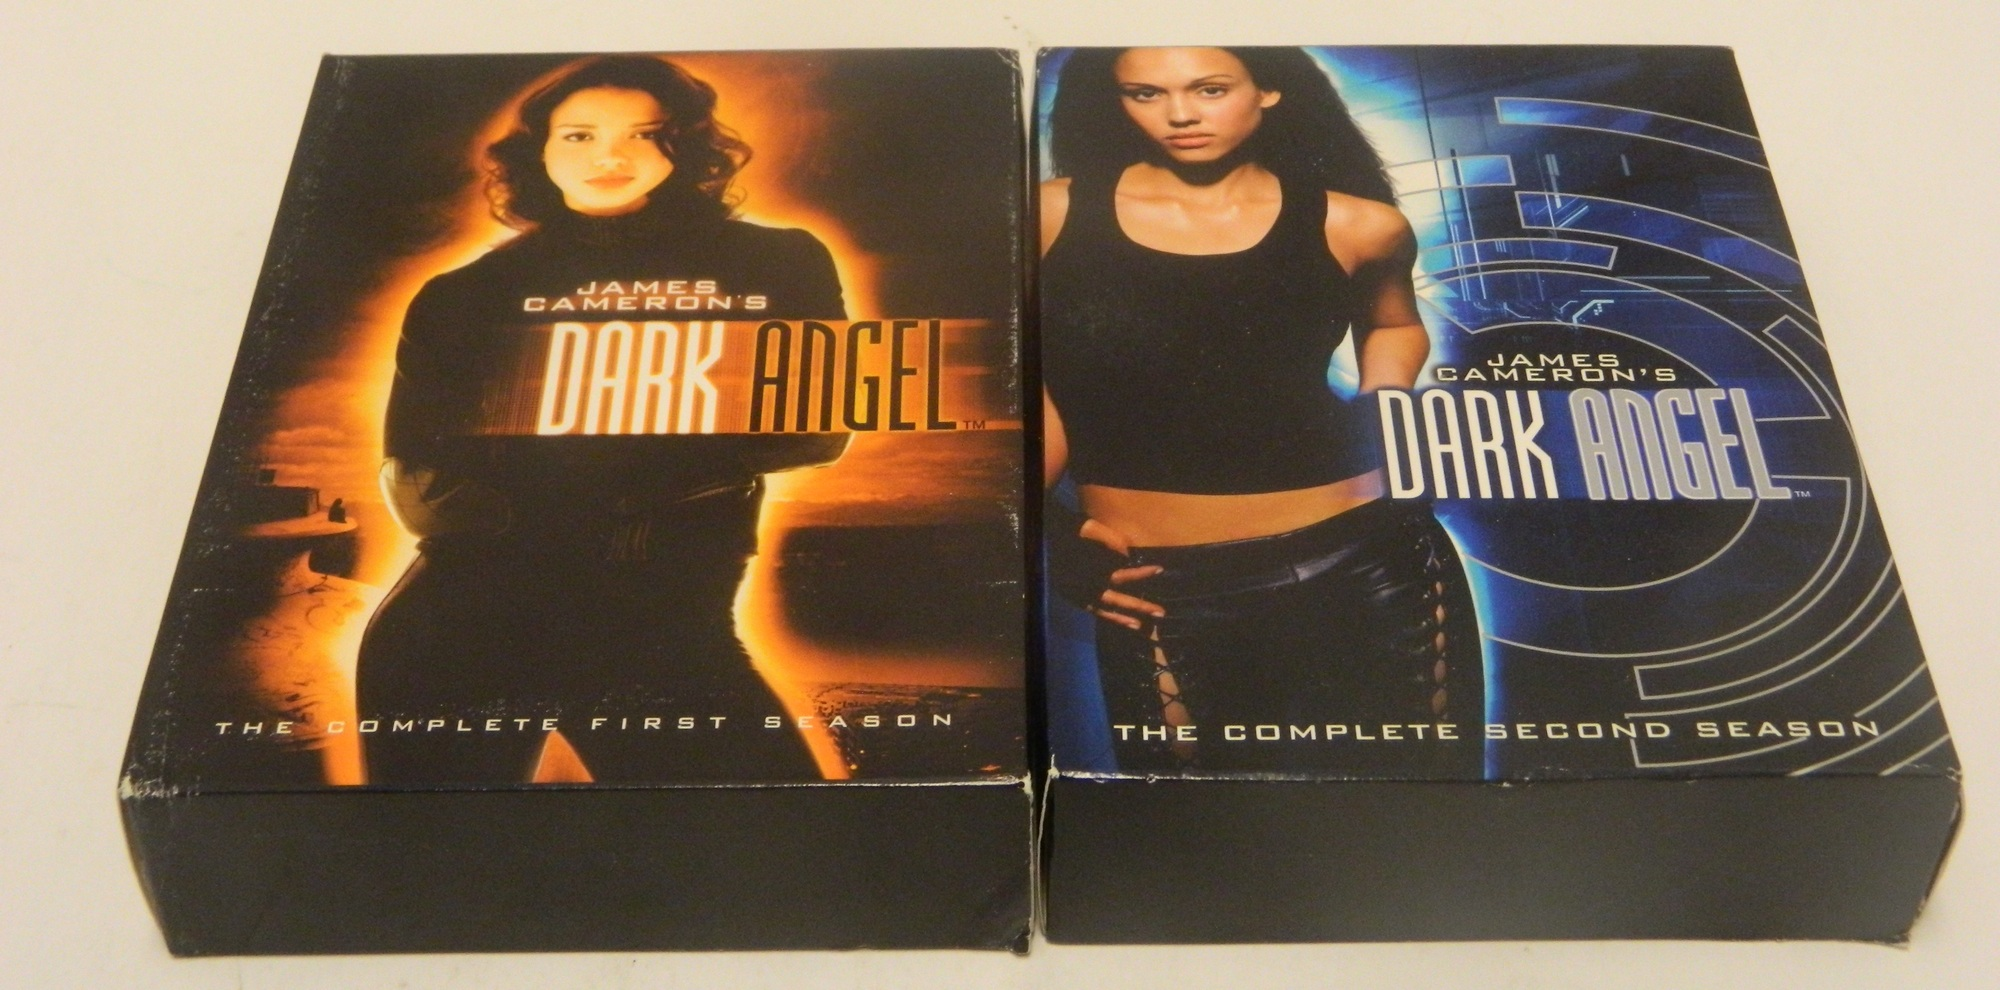 Dark Angel Boxes